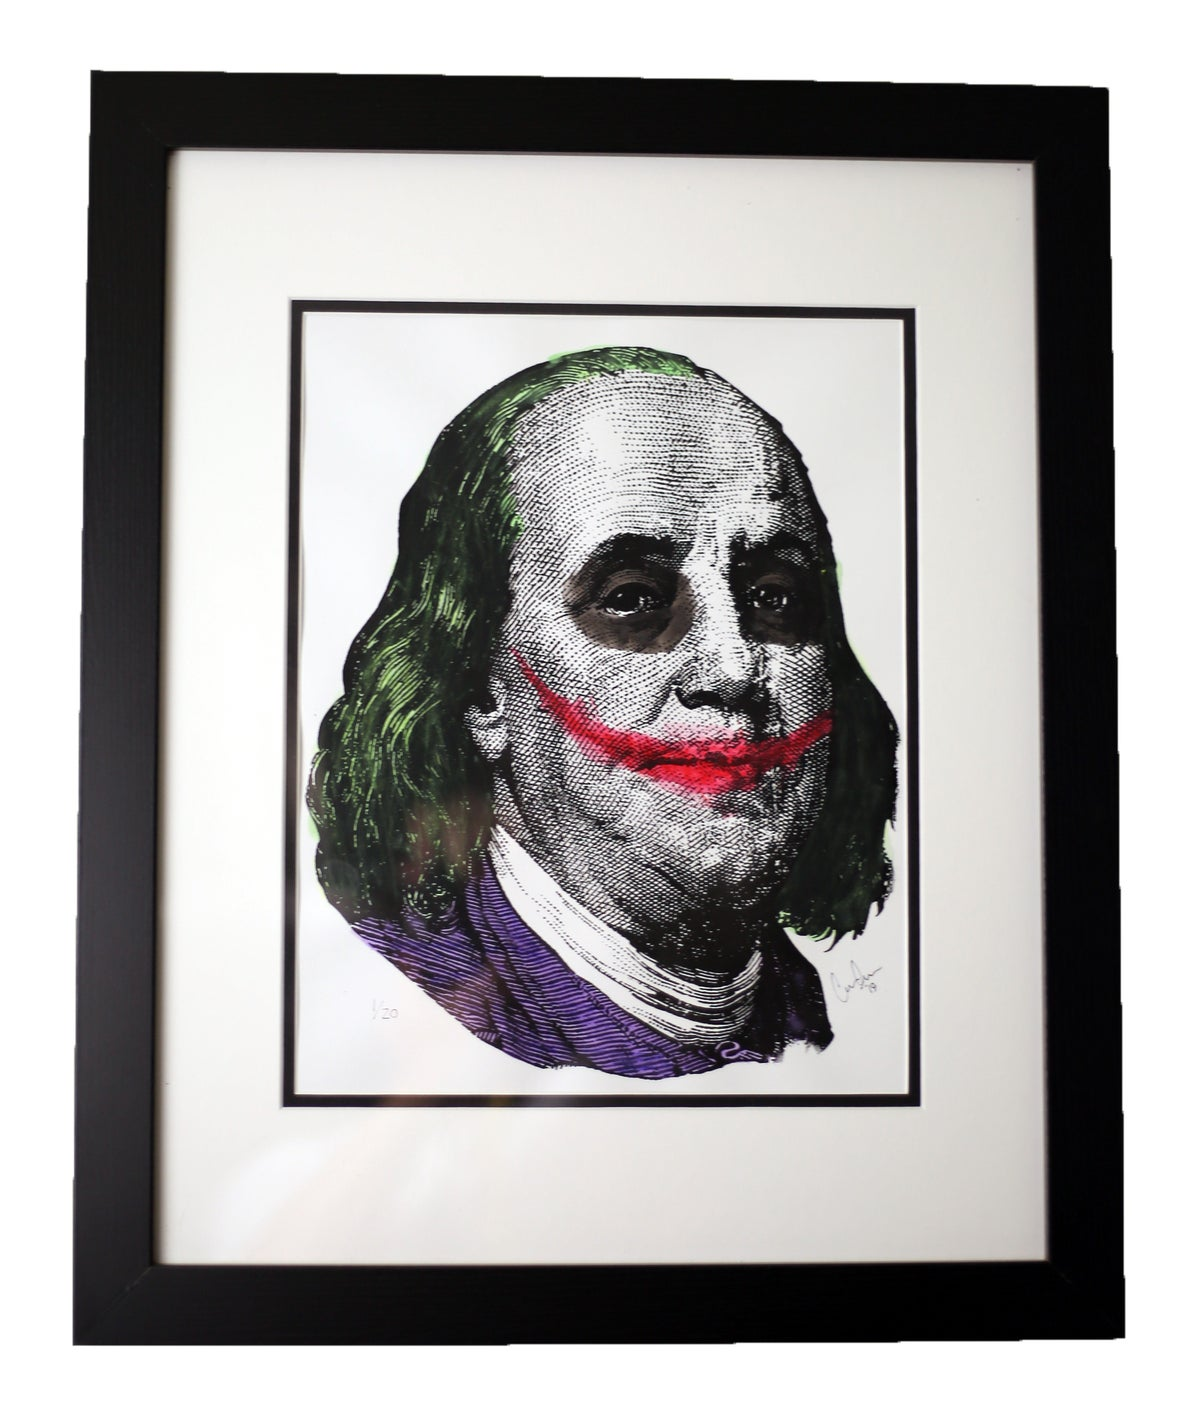 Image of Why So Serious? *Limited Edition of 20*